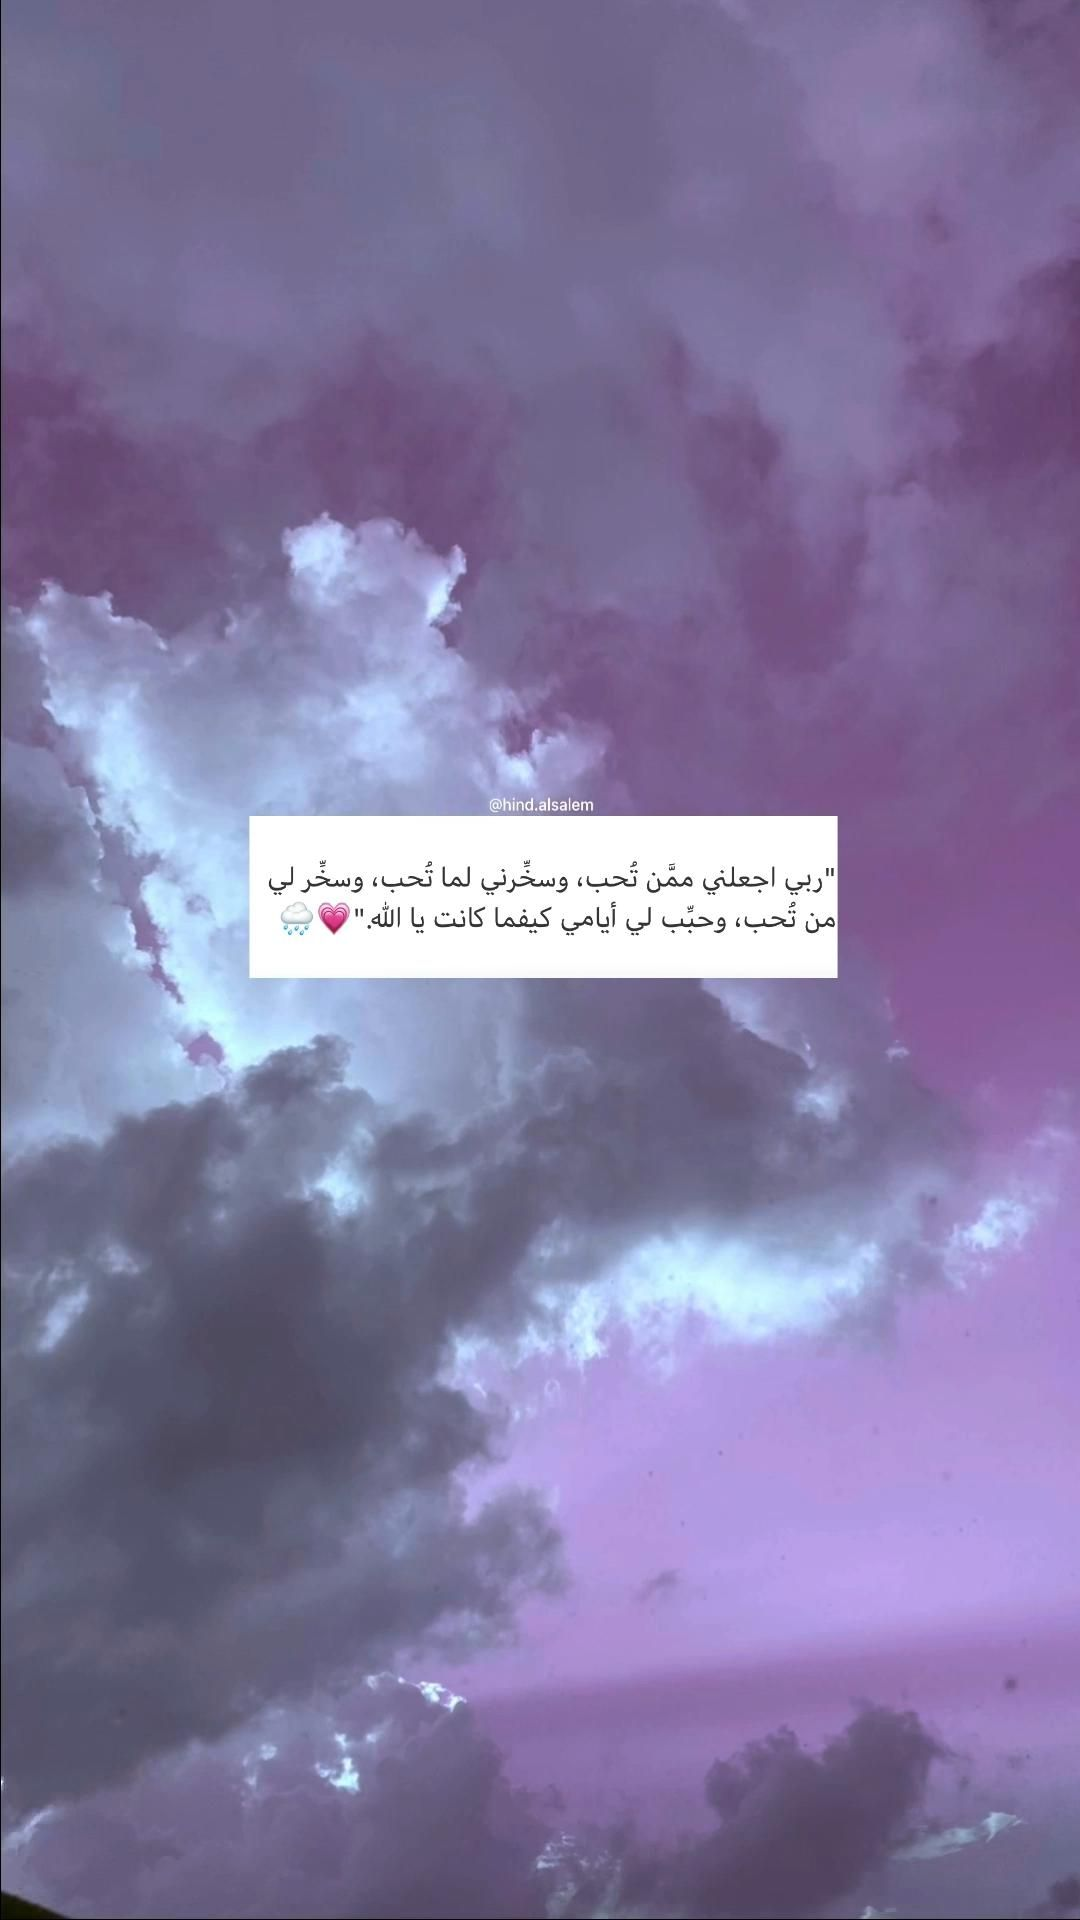 Pin By Ghaith On Video Video In 2021 Girly Images Cover Photo Quotes Quran Book